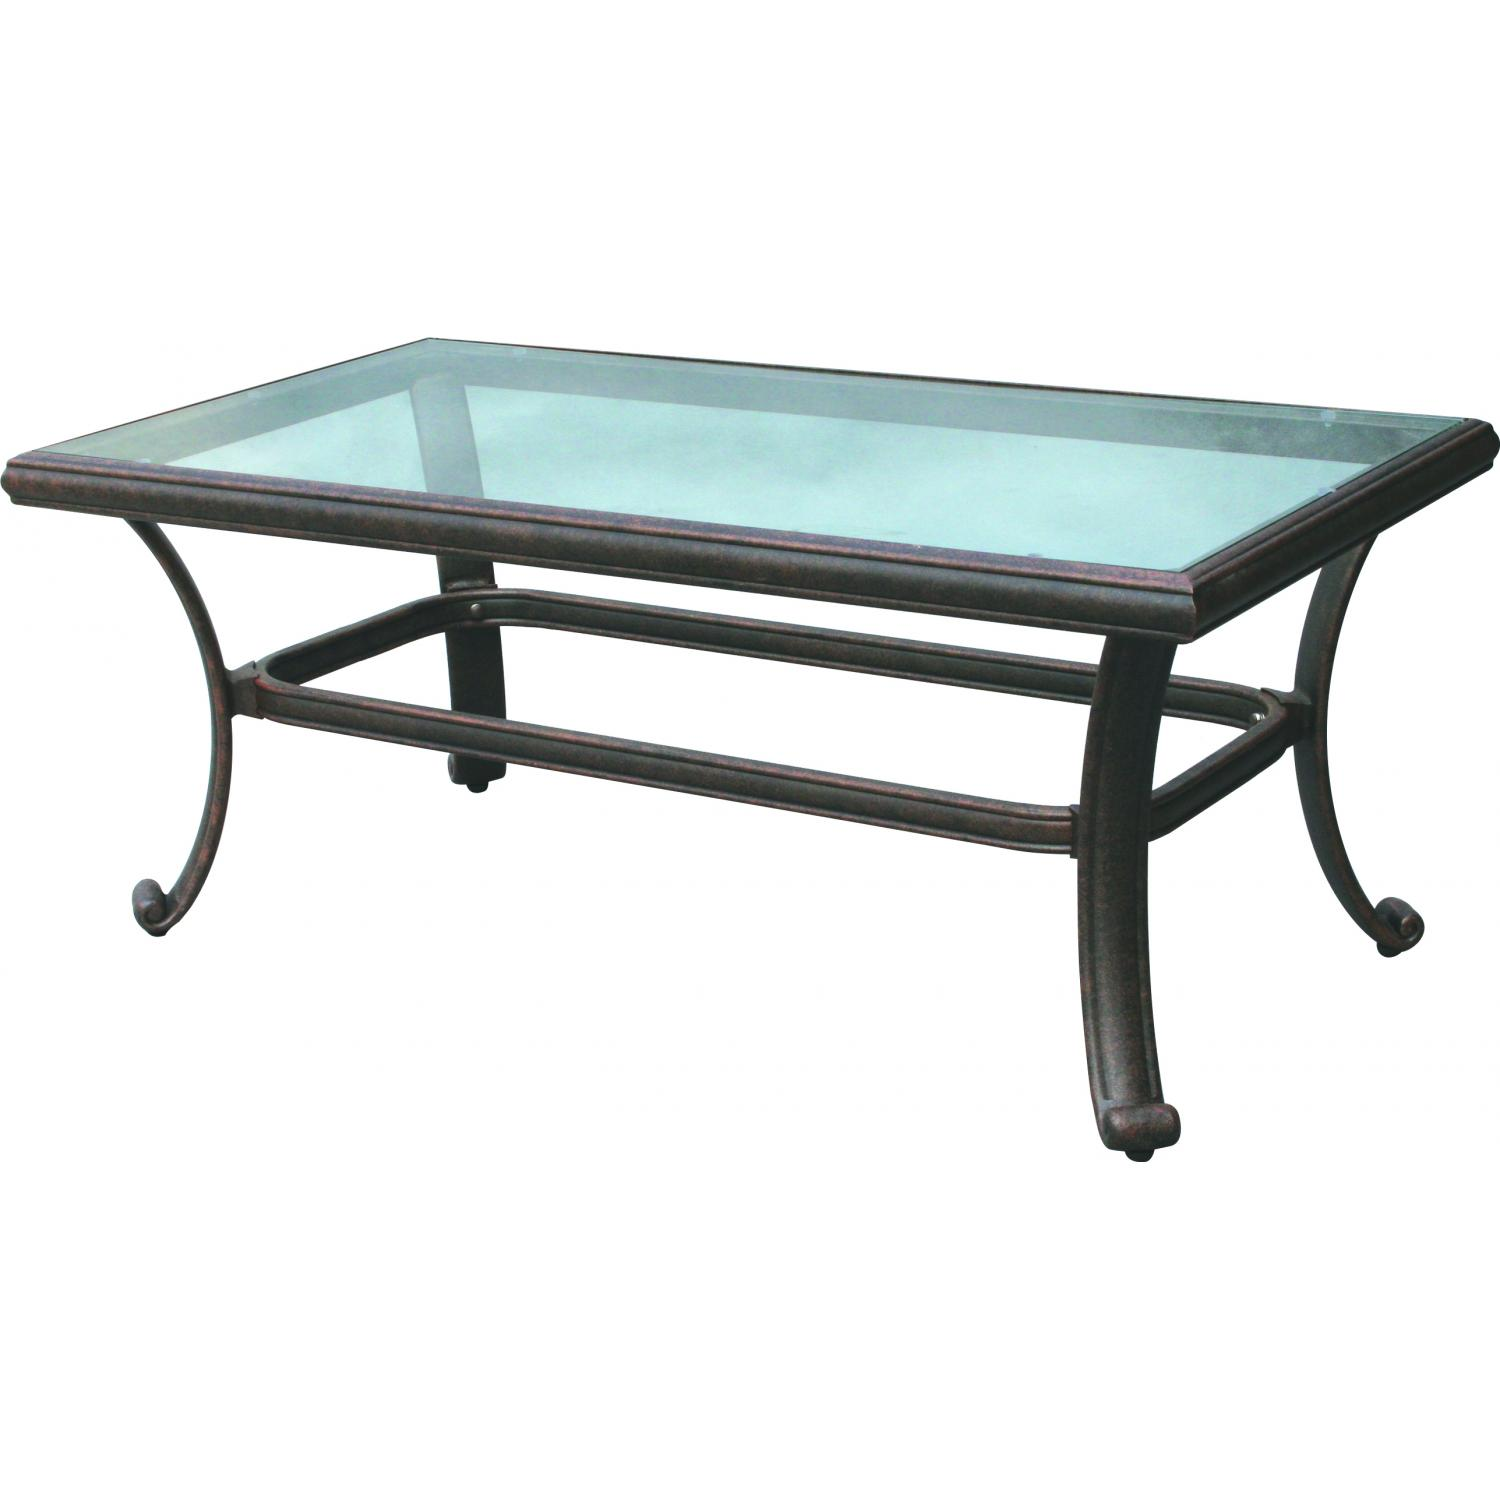 darlee series inch cast aluminum patio dining table with glass top outdoor side coffee end tables small wood nightstand nice design tea metal garden industrial storage west elm